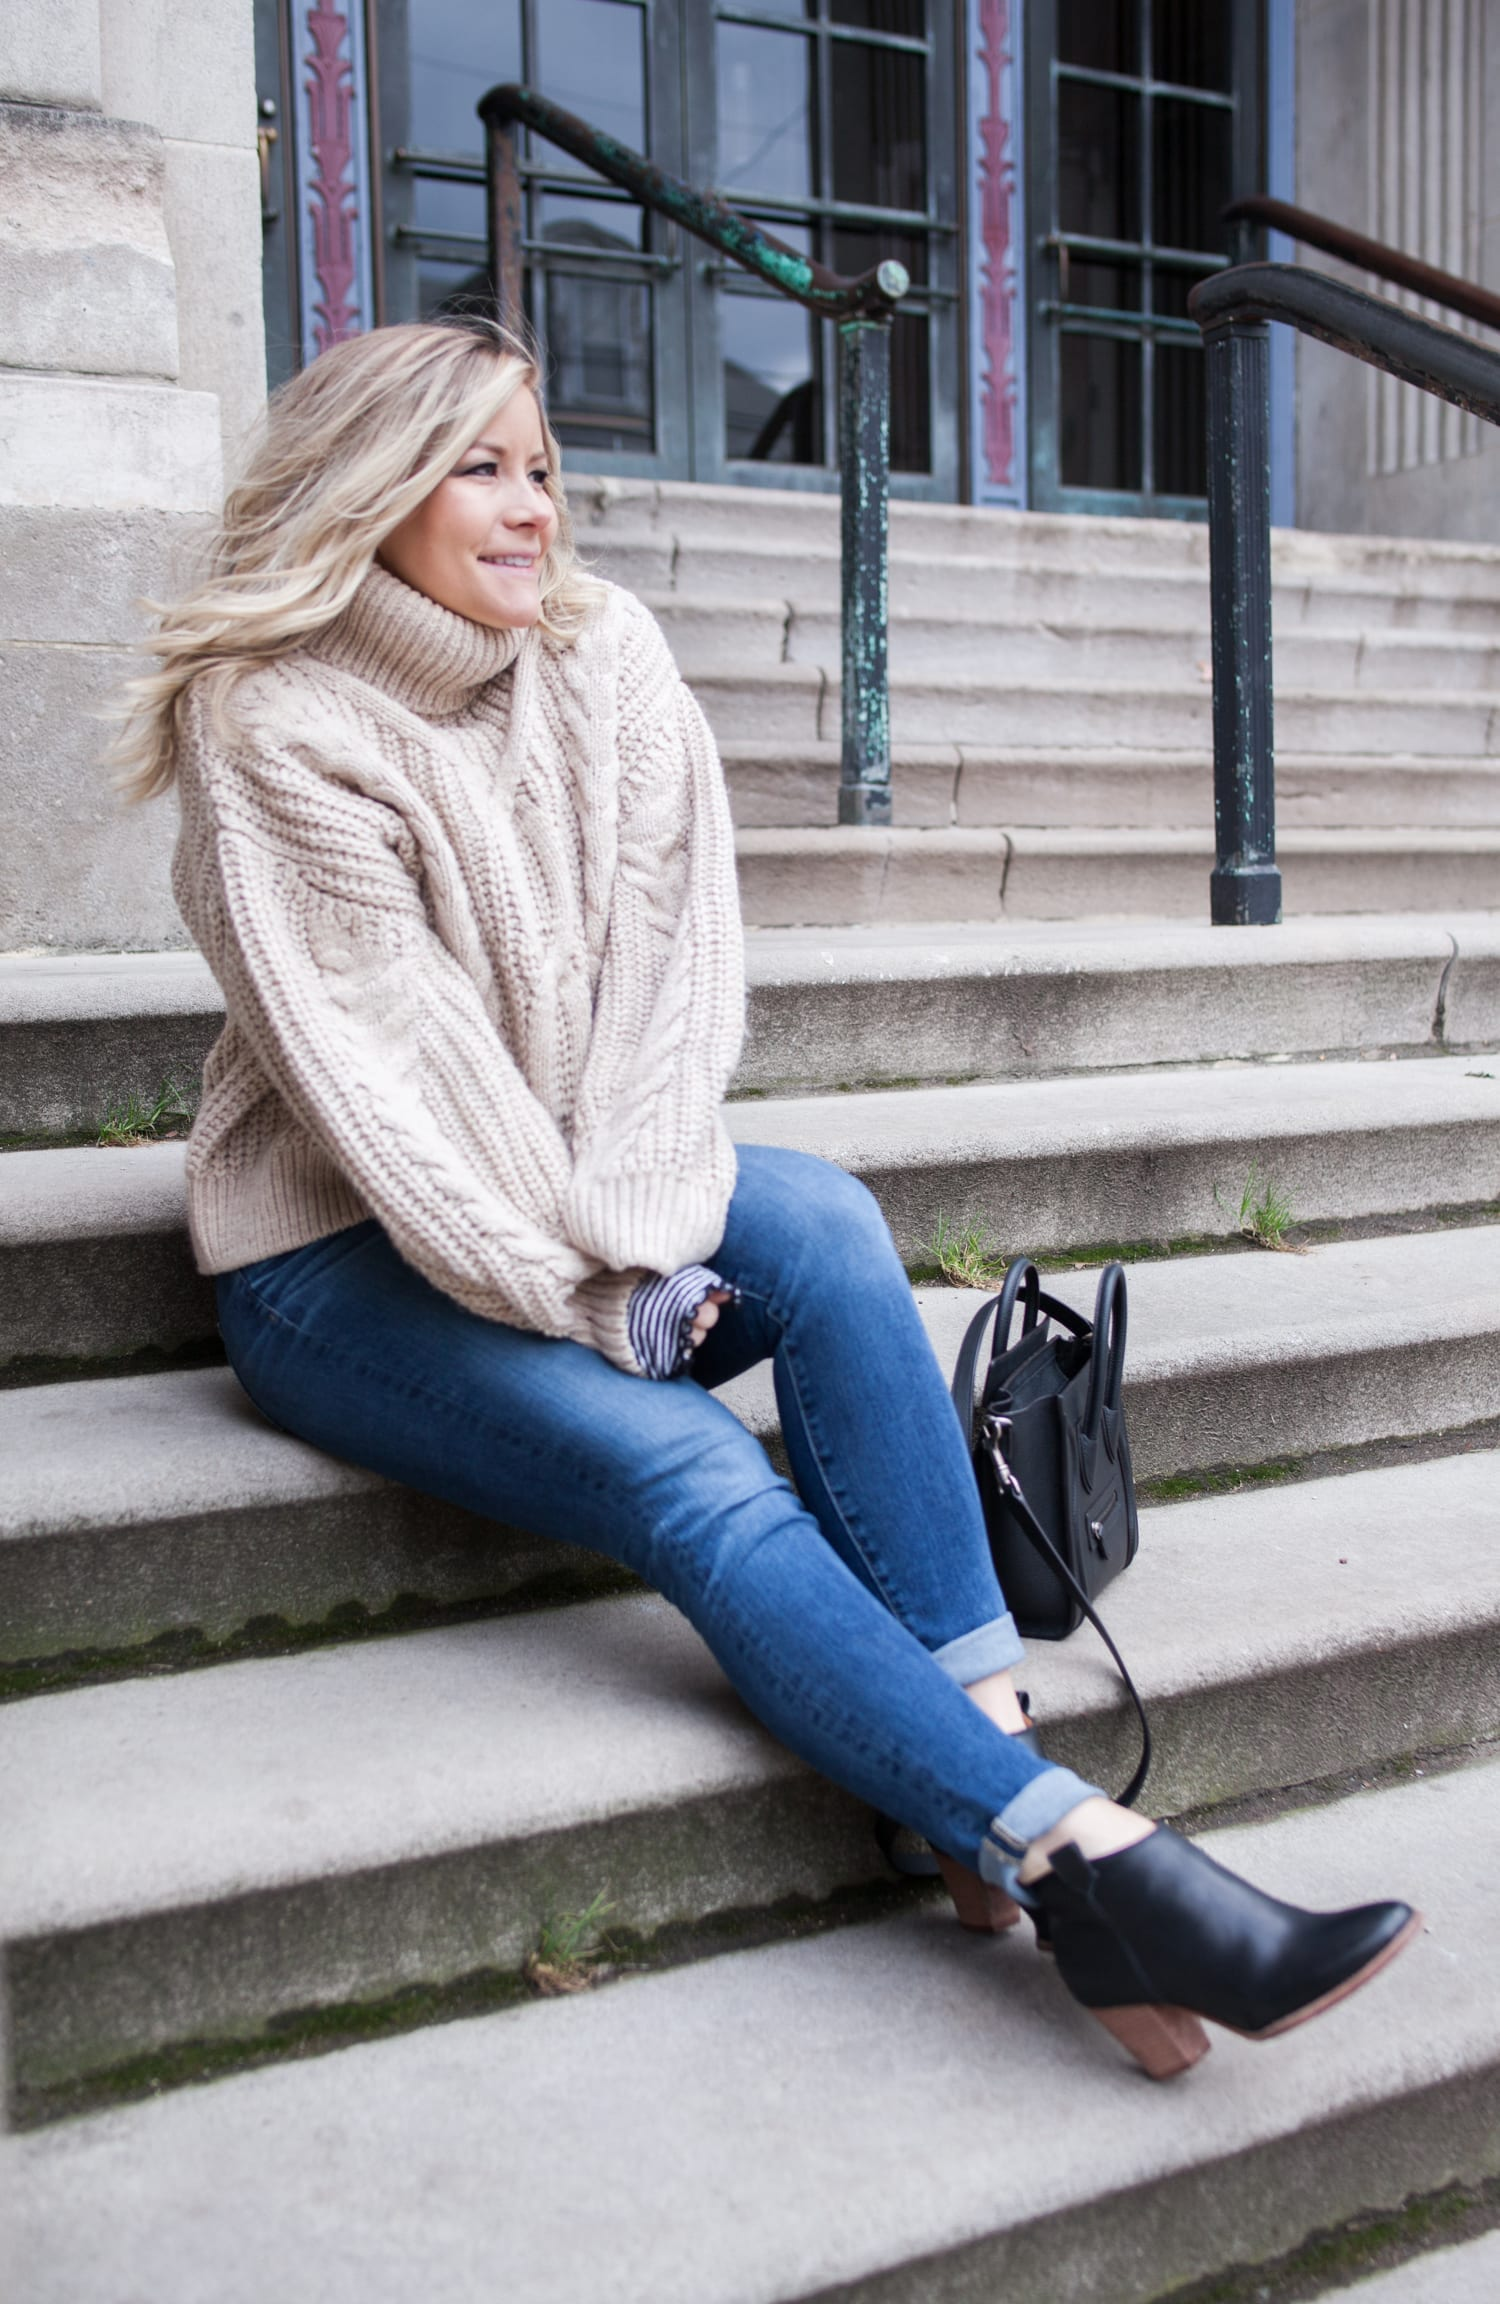 My Favorite Sweater of the Season + Day 7 of #12DaysofGiveaways